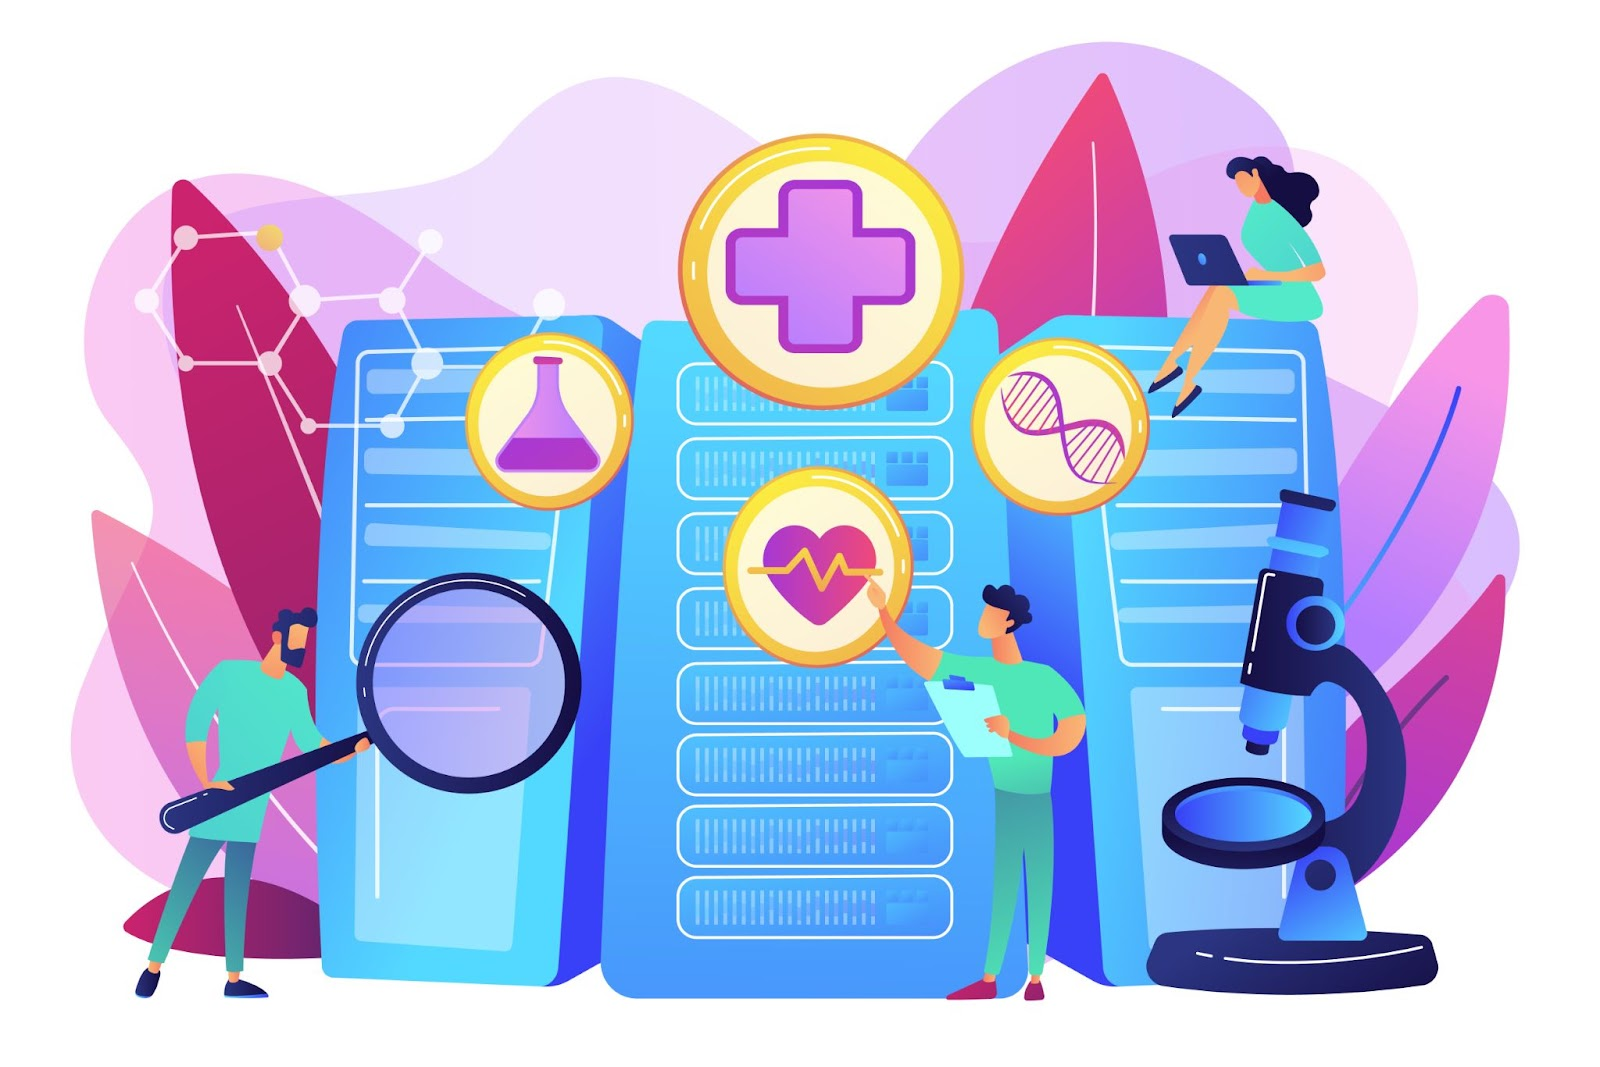 Use of predictive models in healthcare sector